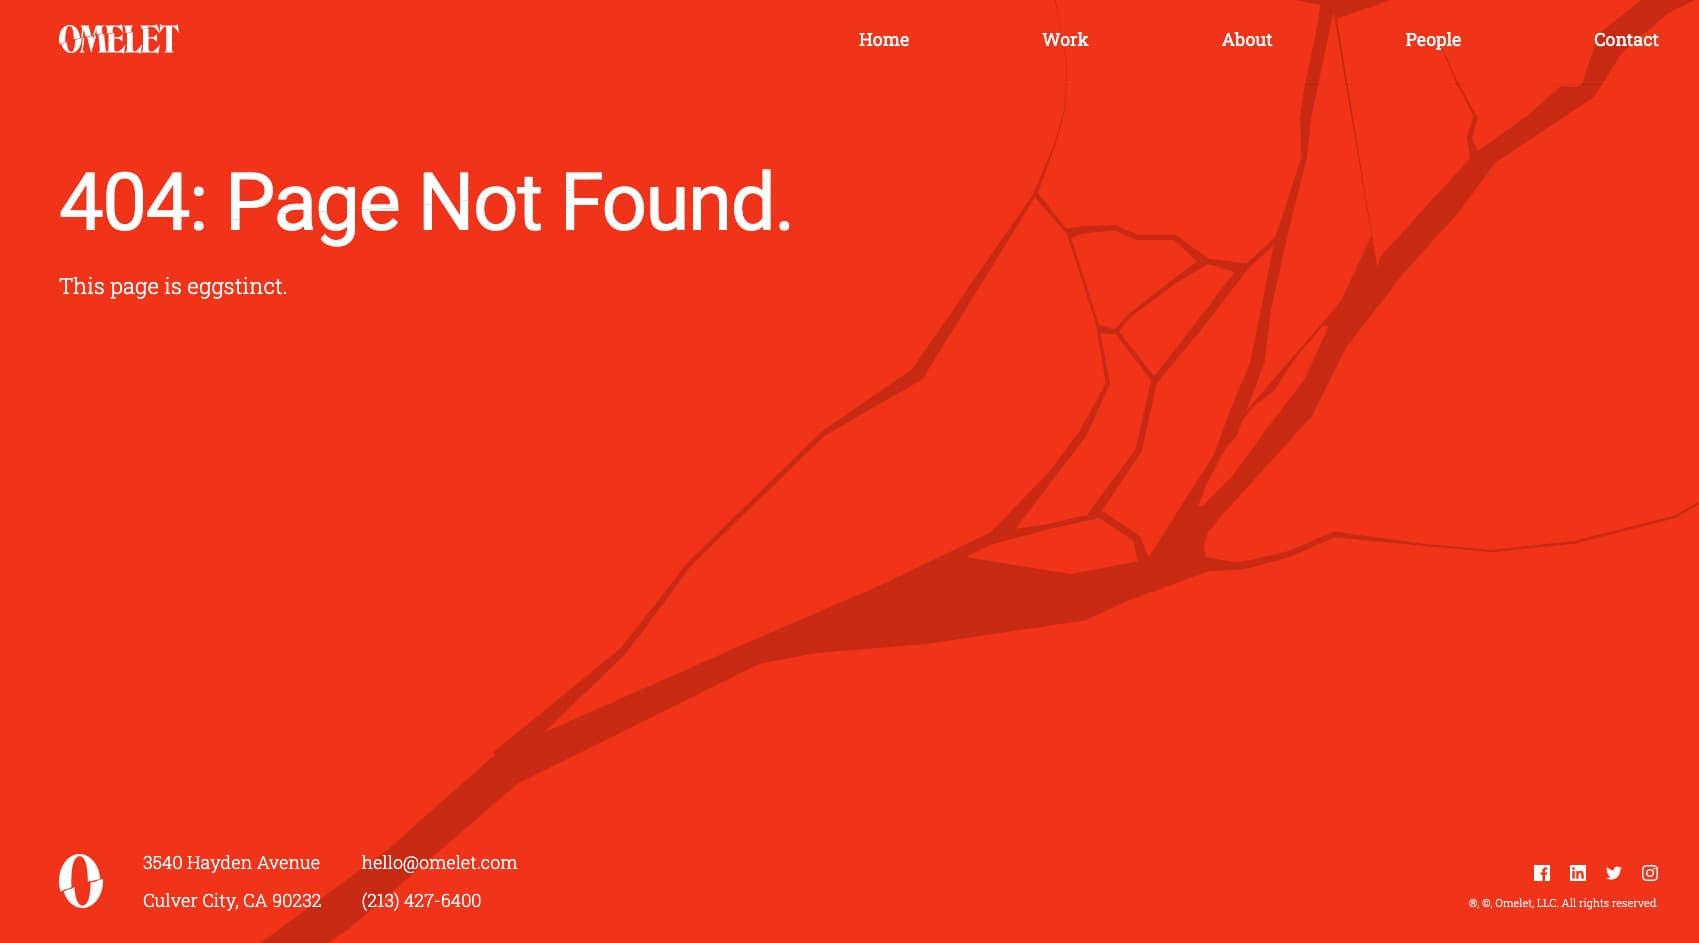 404 error page from Omelet agency.